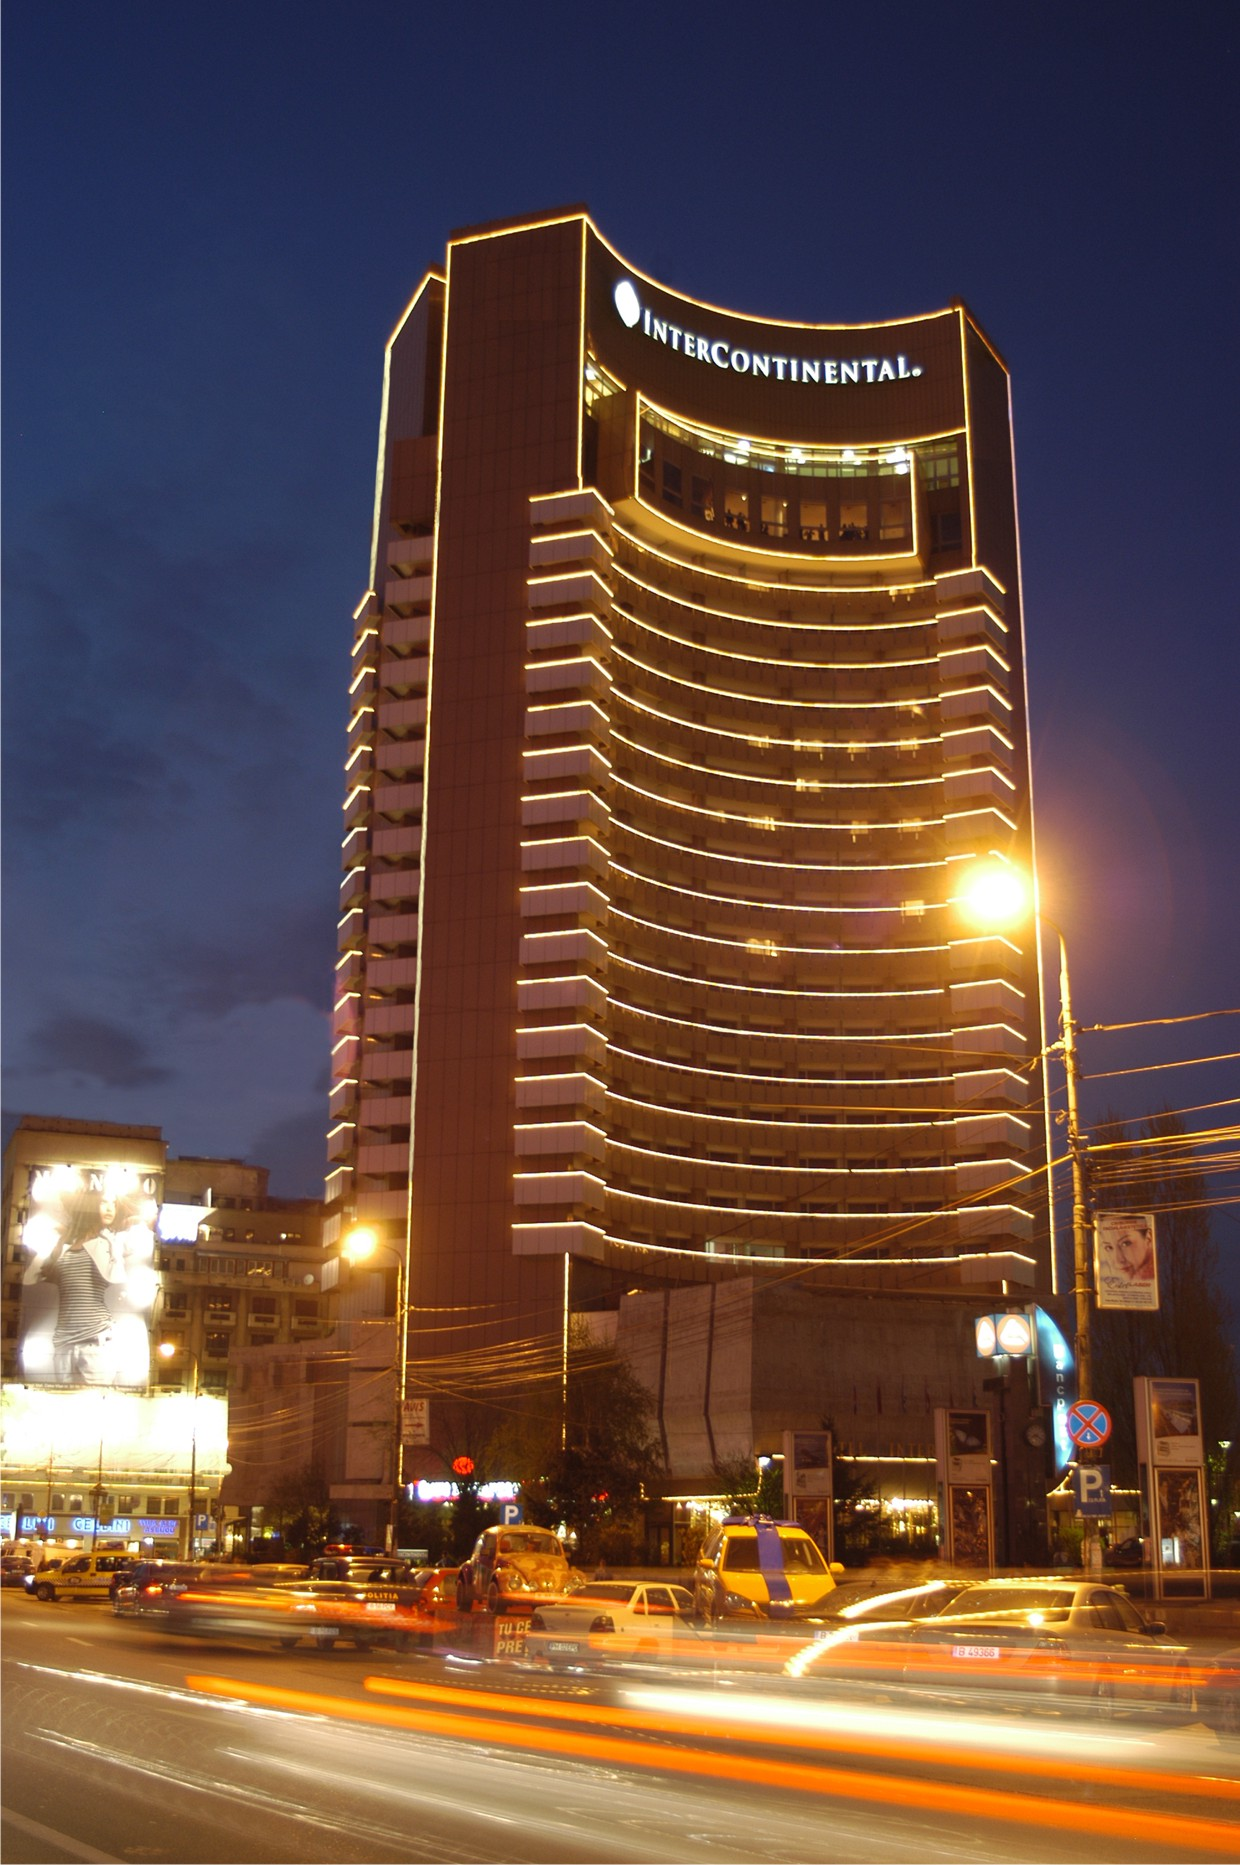 hotel intercontinental bukarest